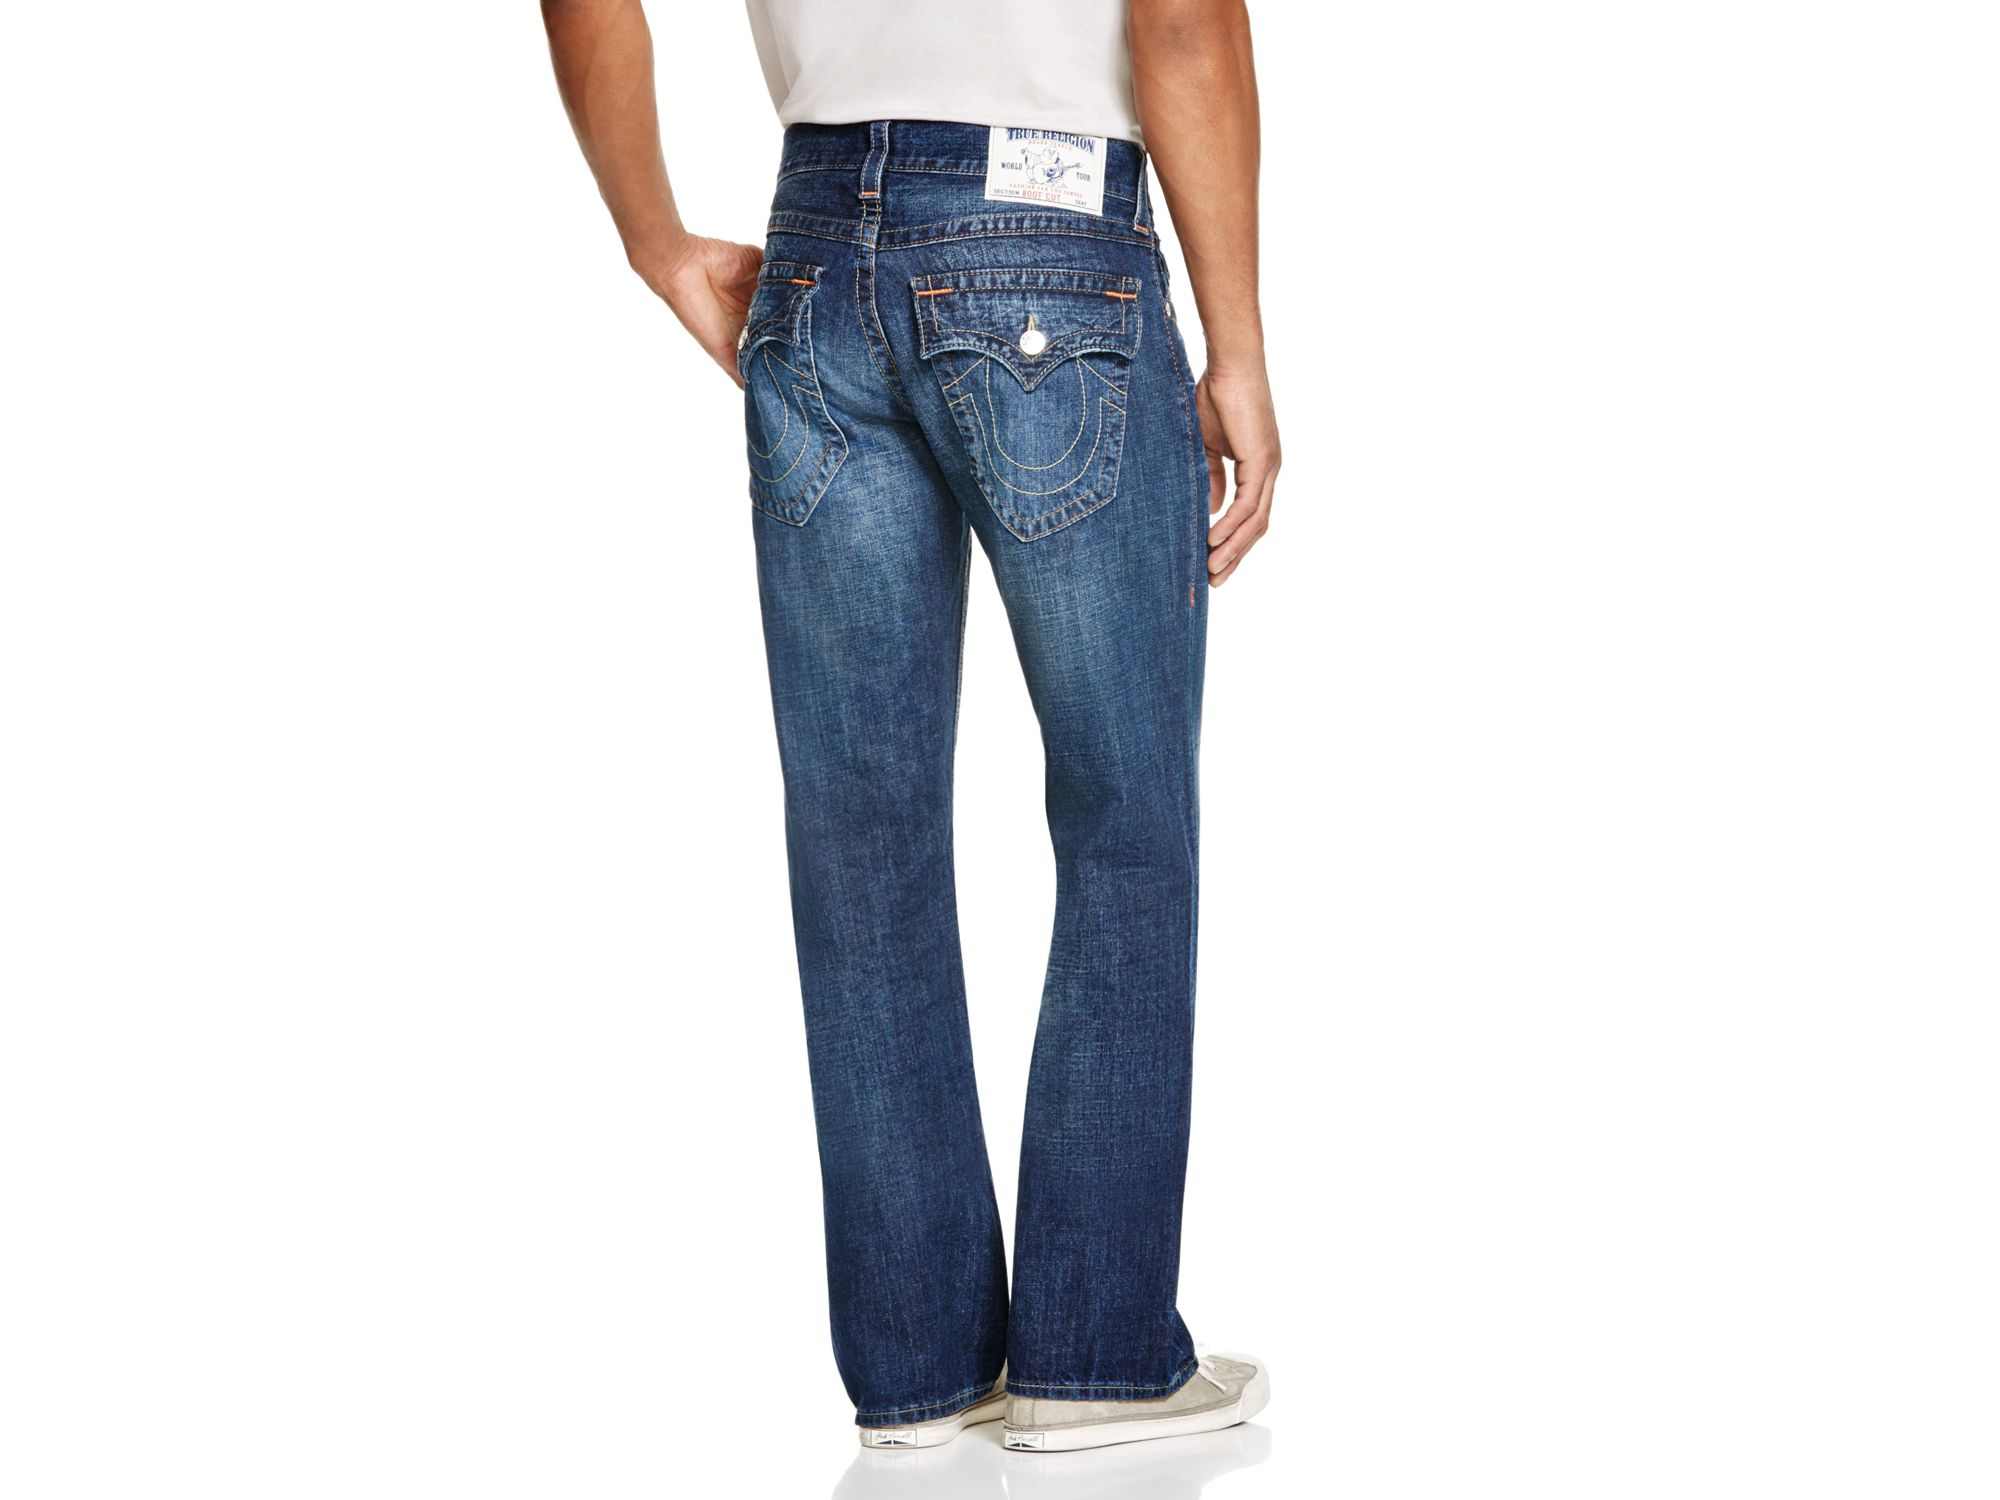 True Religion Denim Basic Flap Pocket Bootcut Jeans In Multi - Compare At $216 for Men